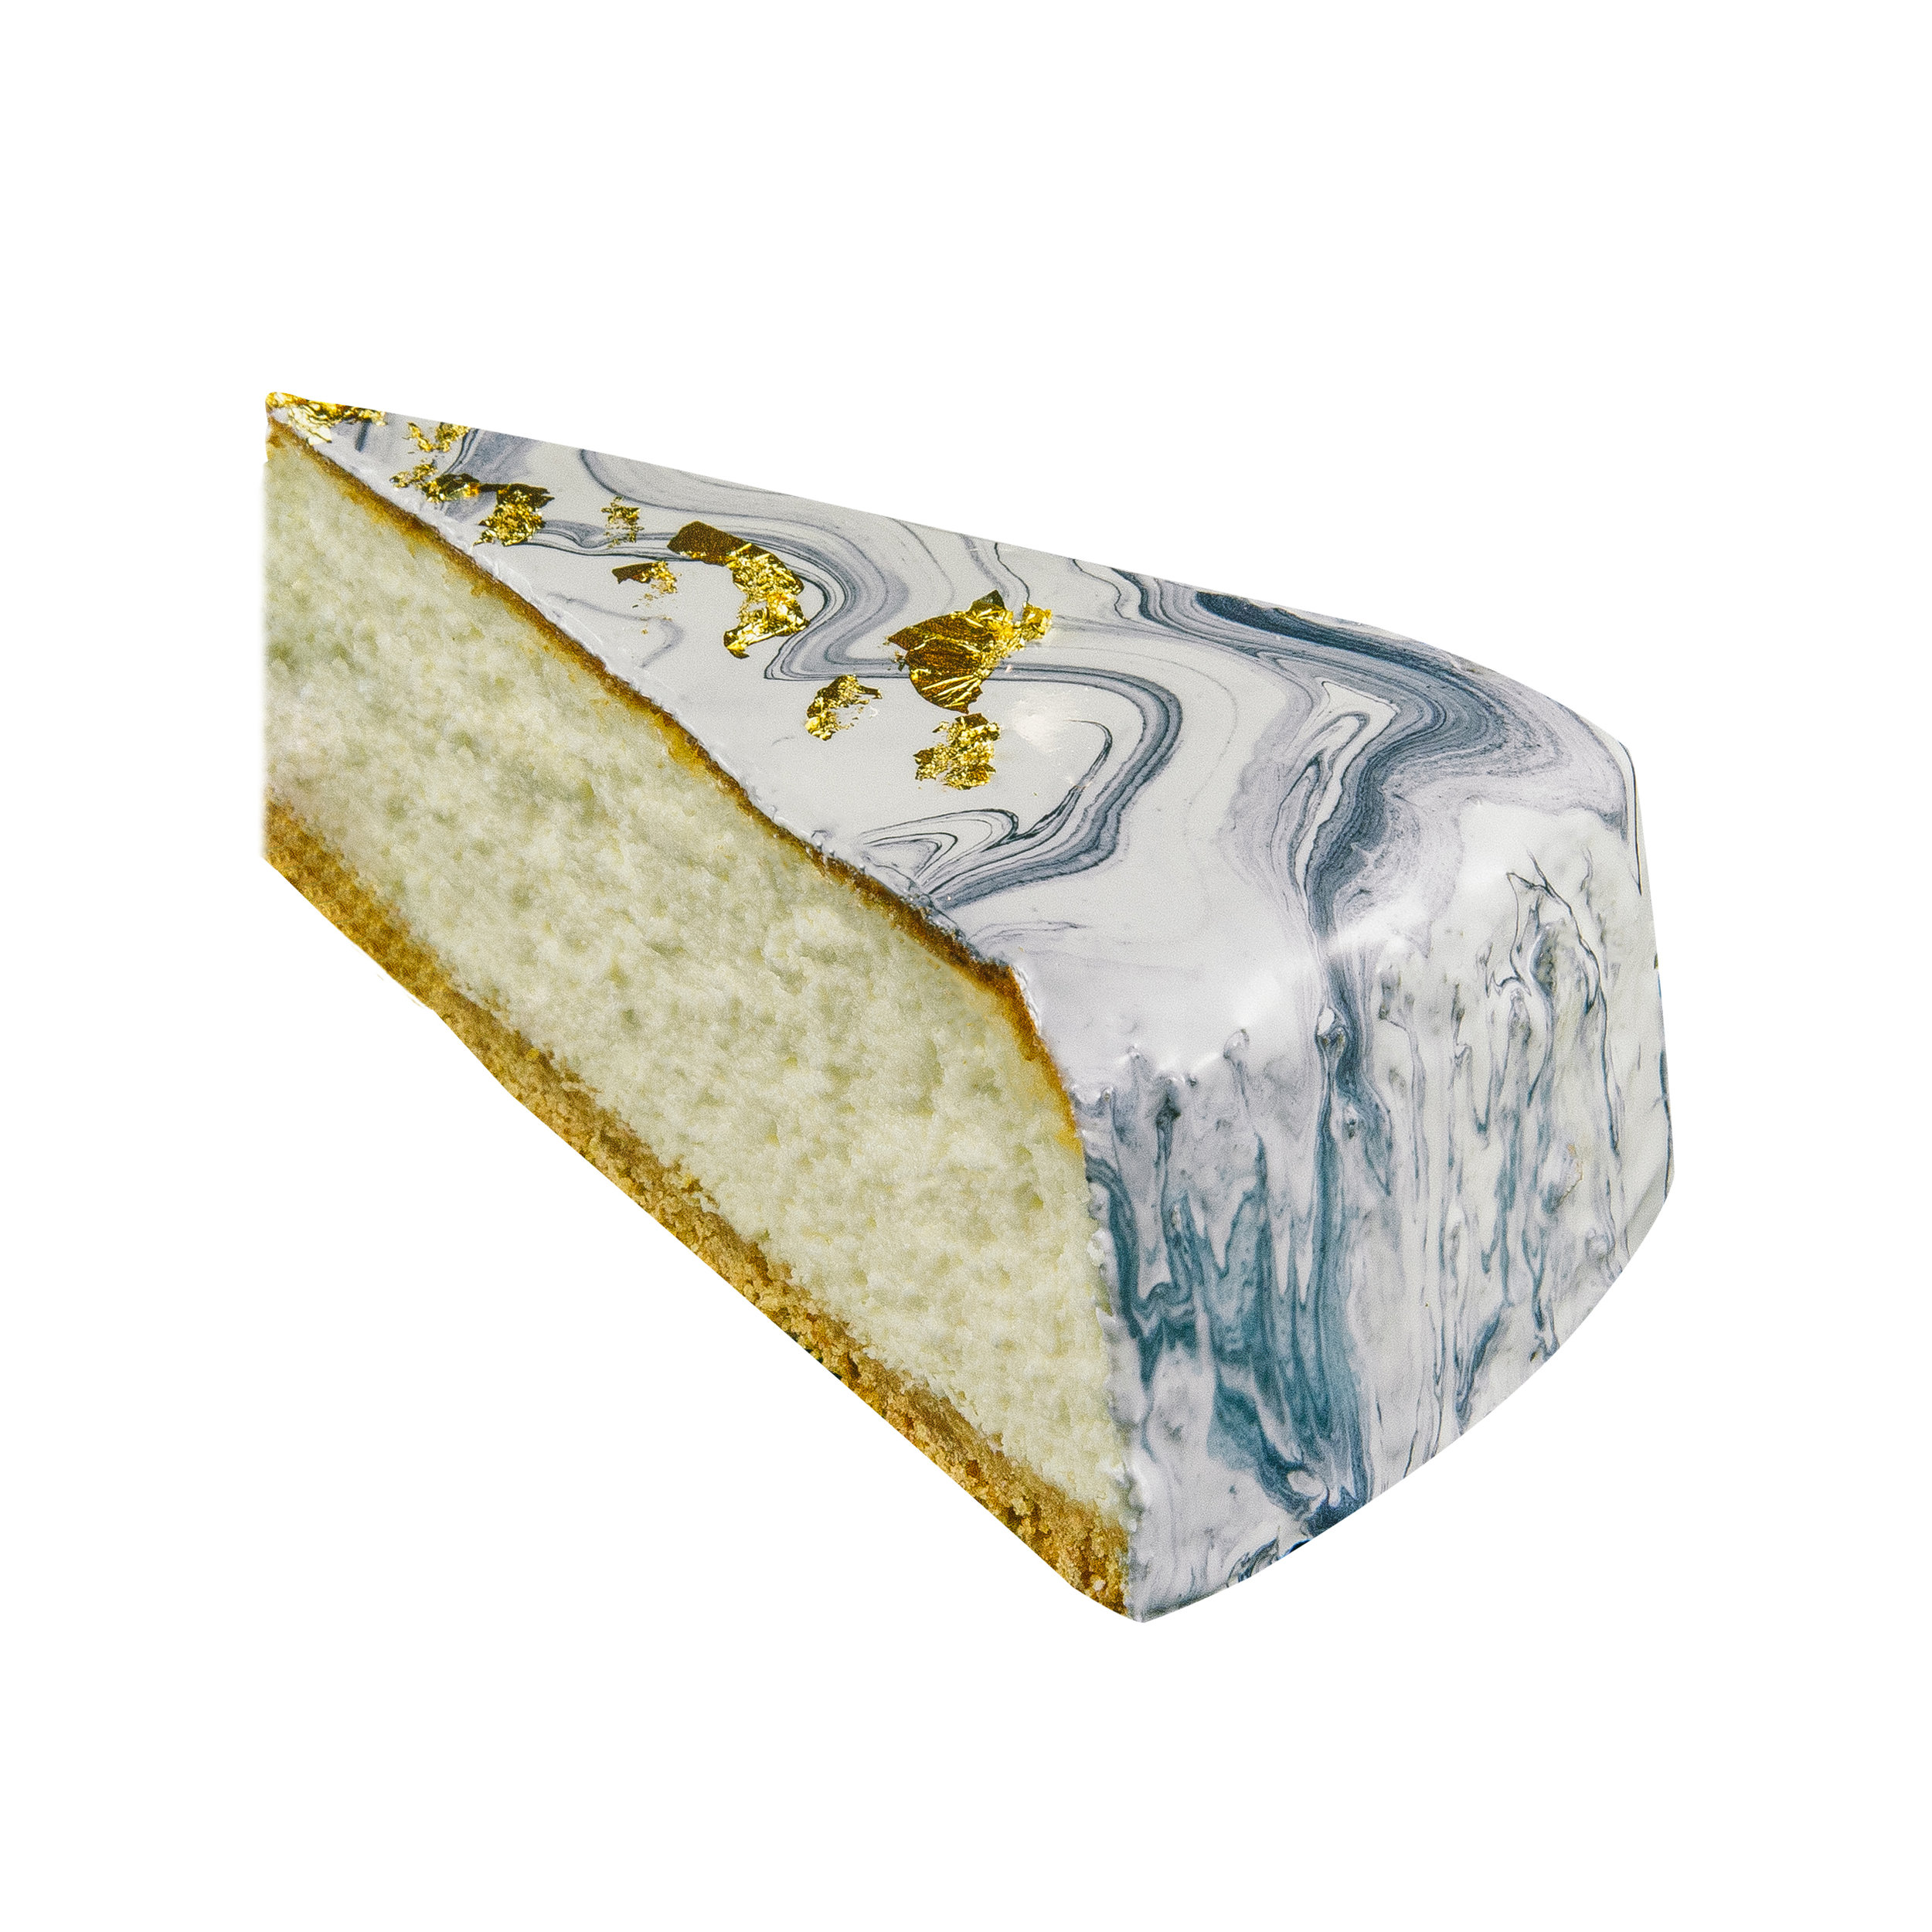 24K MARBLE CHEESECAKE SLICE -